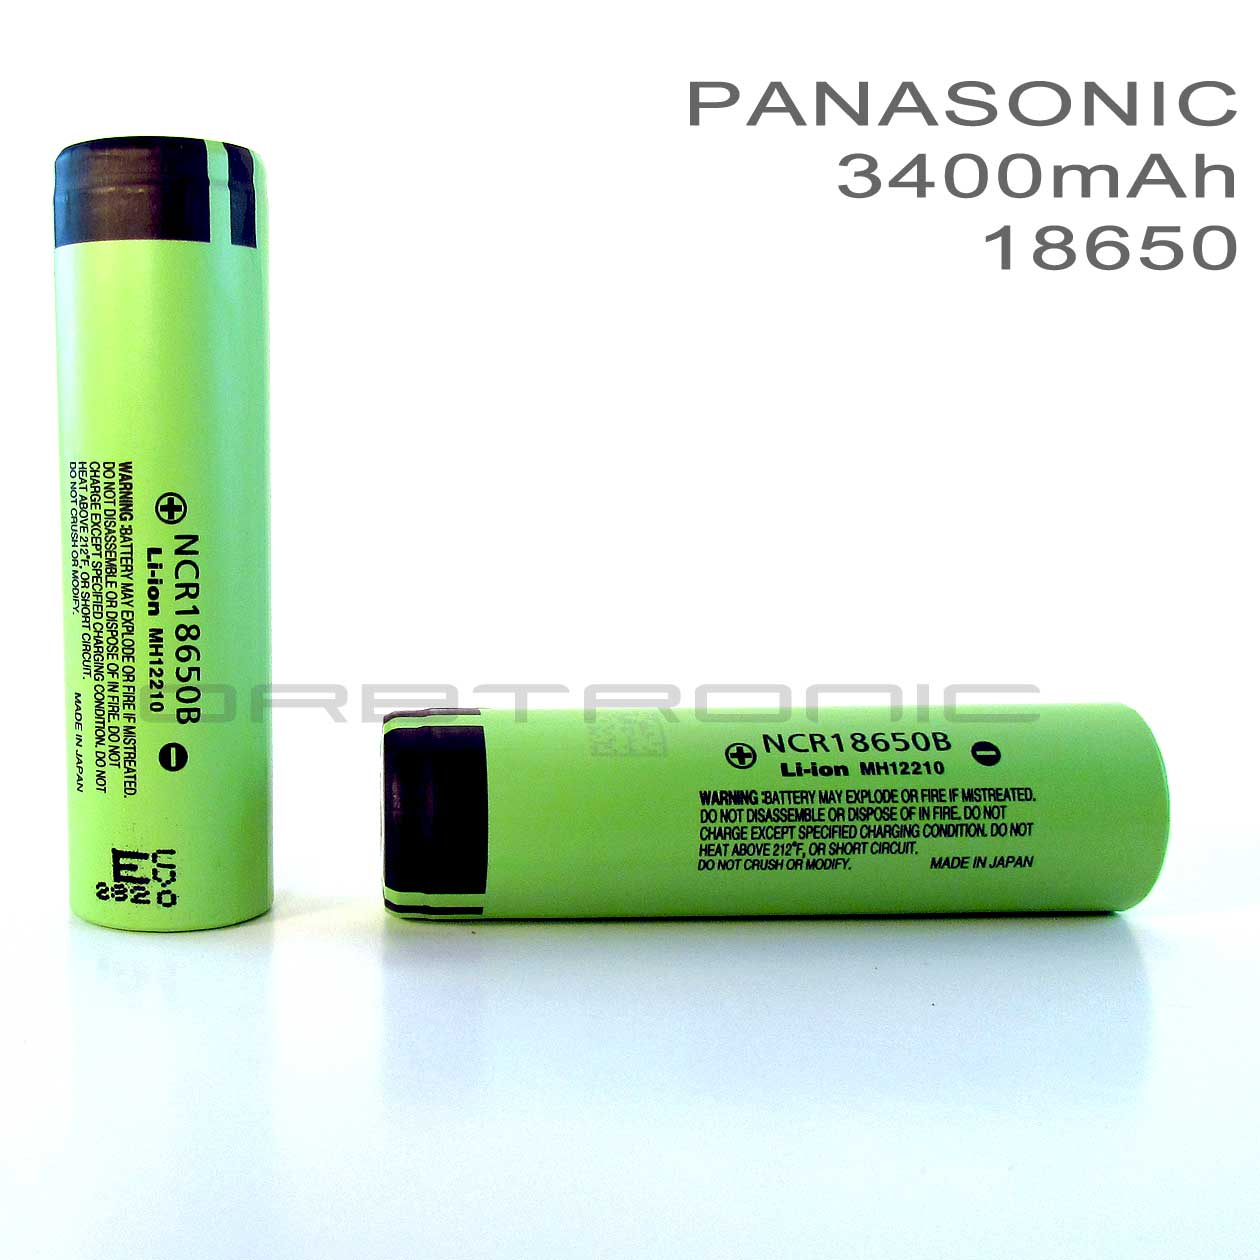 18650 battery review test specs 2018 panasonic. Black Bedroom Furniture Sets. Home Design Ideas